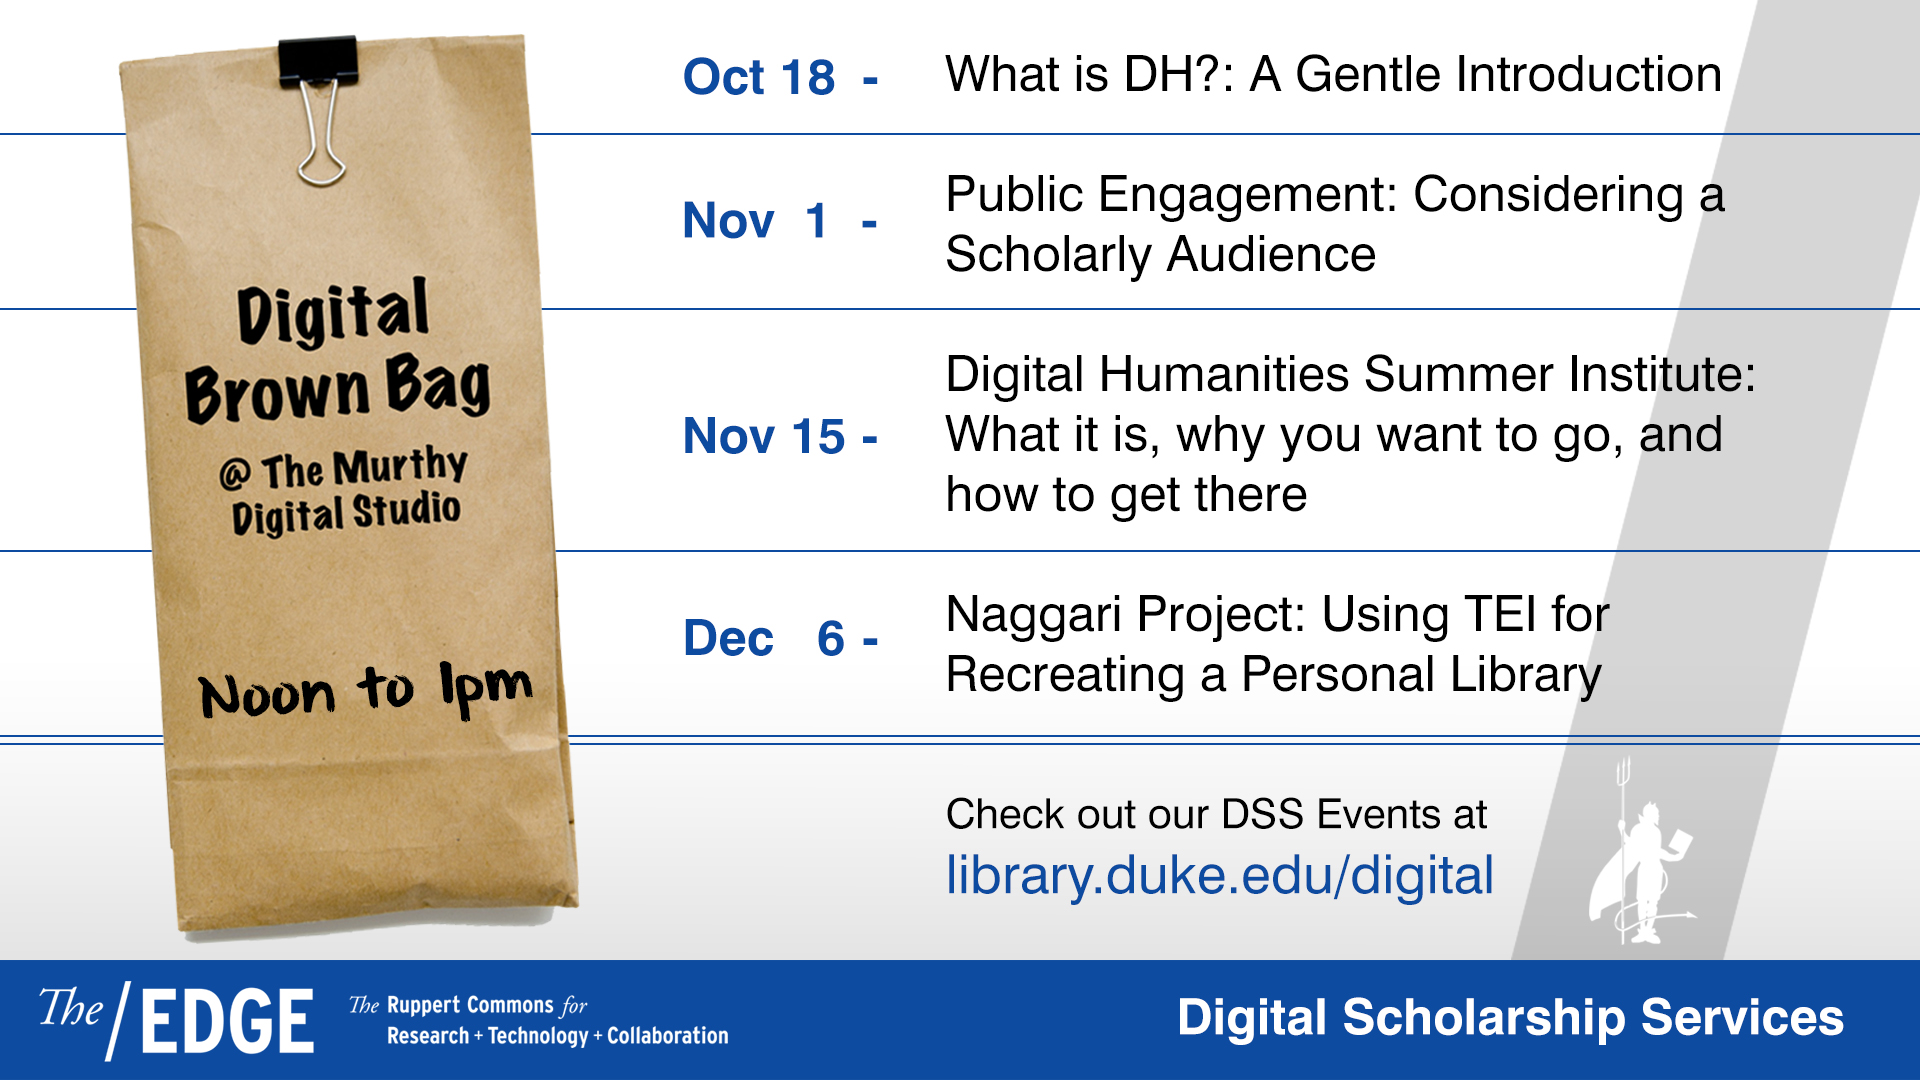 Digital Brown Bag Lunch Series: What is DH?: A Gentle Introduction